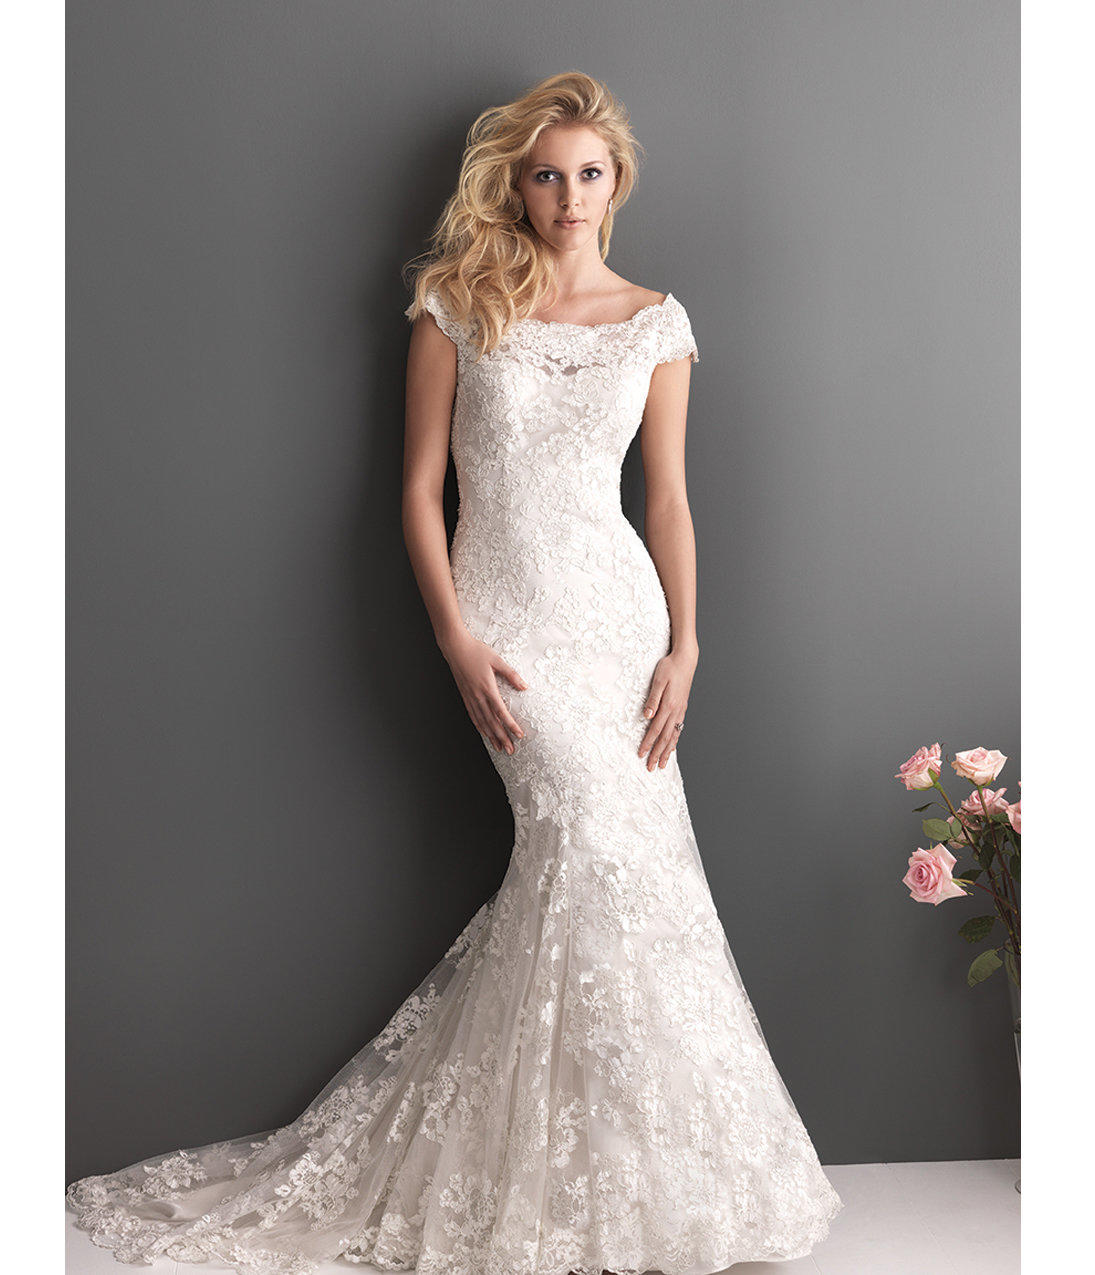 2013 Allure Bridal White Lace & from Unique Vintage